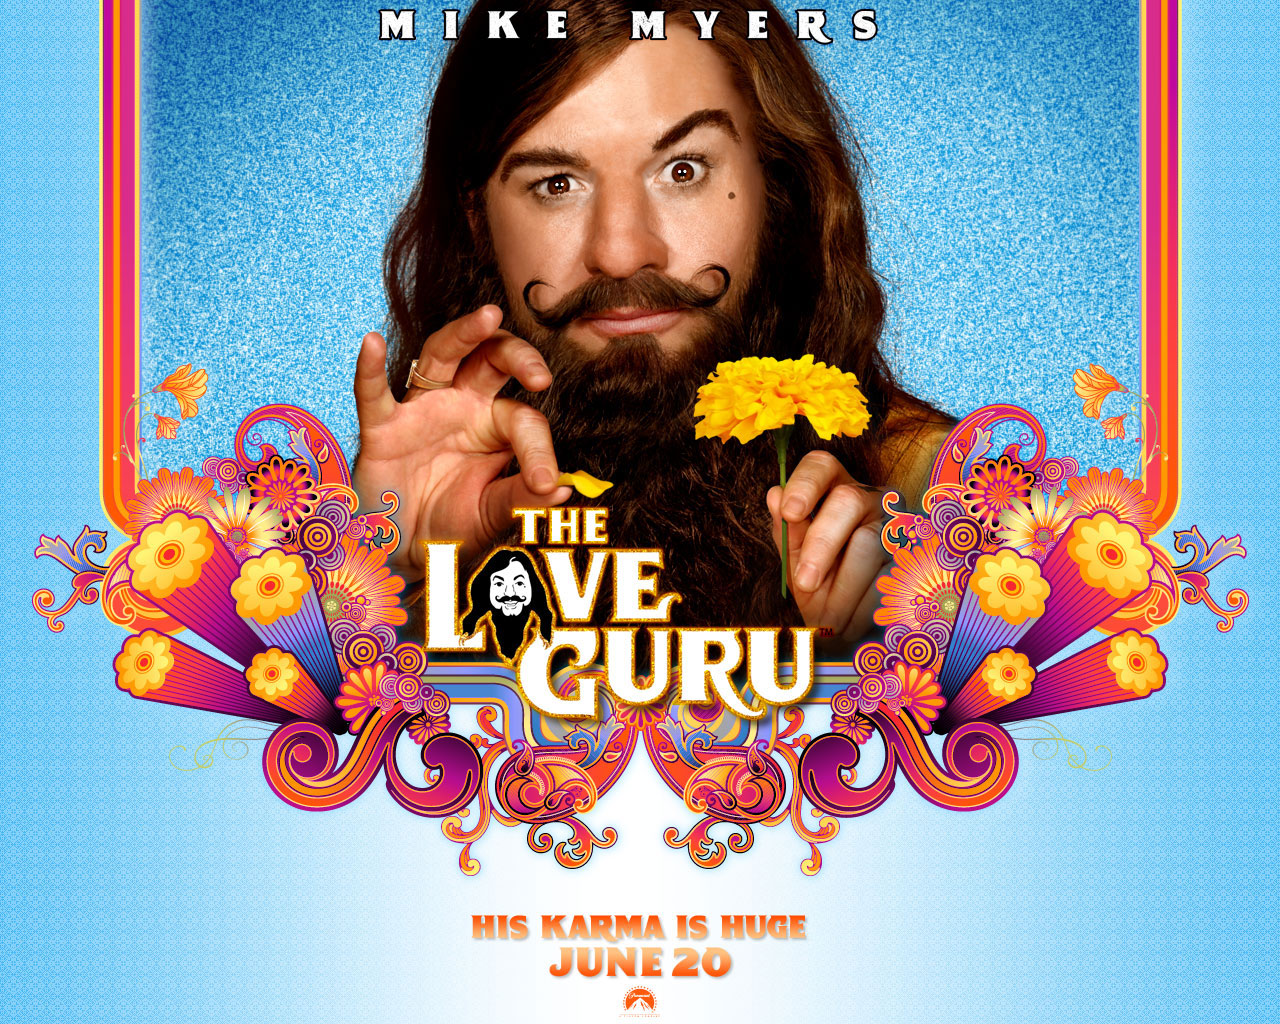 Google Wallpaper Hd Mike Myers Images The Love Guru Hd Wallpaper And